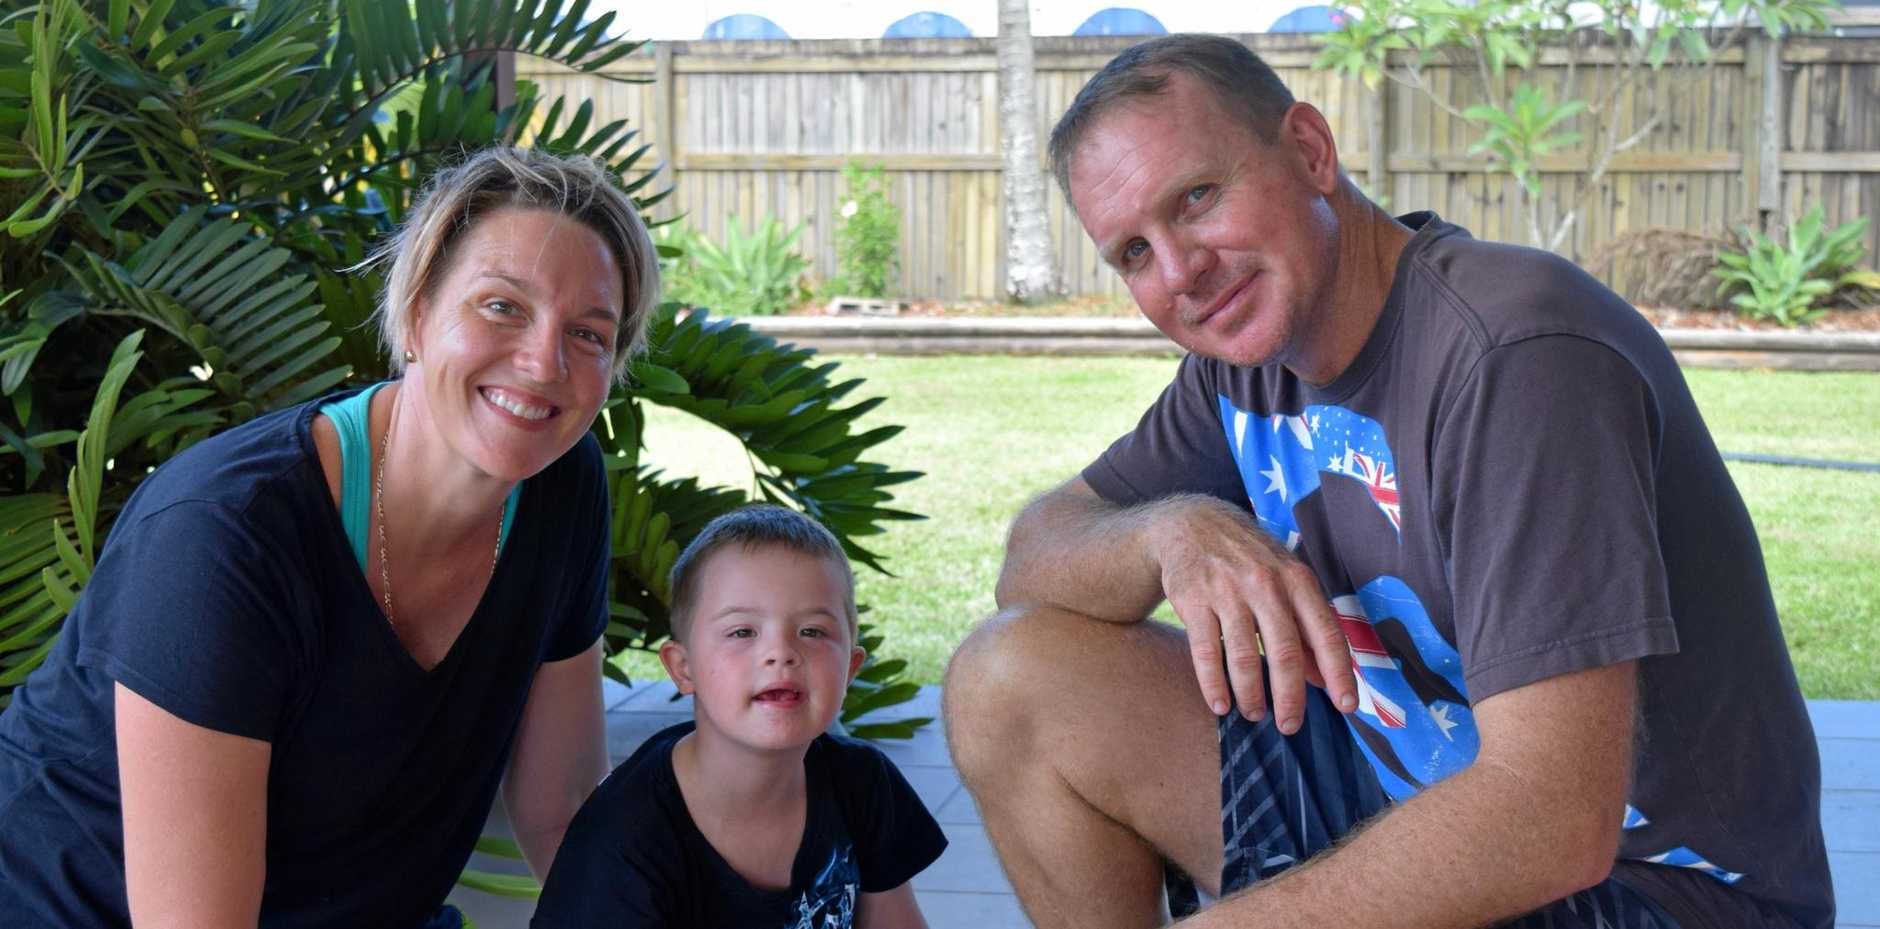 Founder of All Abilities Mackay Bec Nicol believes the current roll-out of the NDIS is leaving some families confused and angry. Picture; Bec Nicol with son Reef and husband Peter.